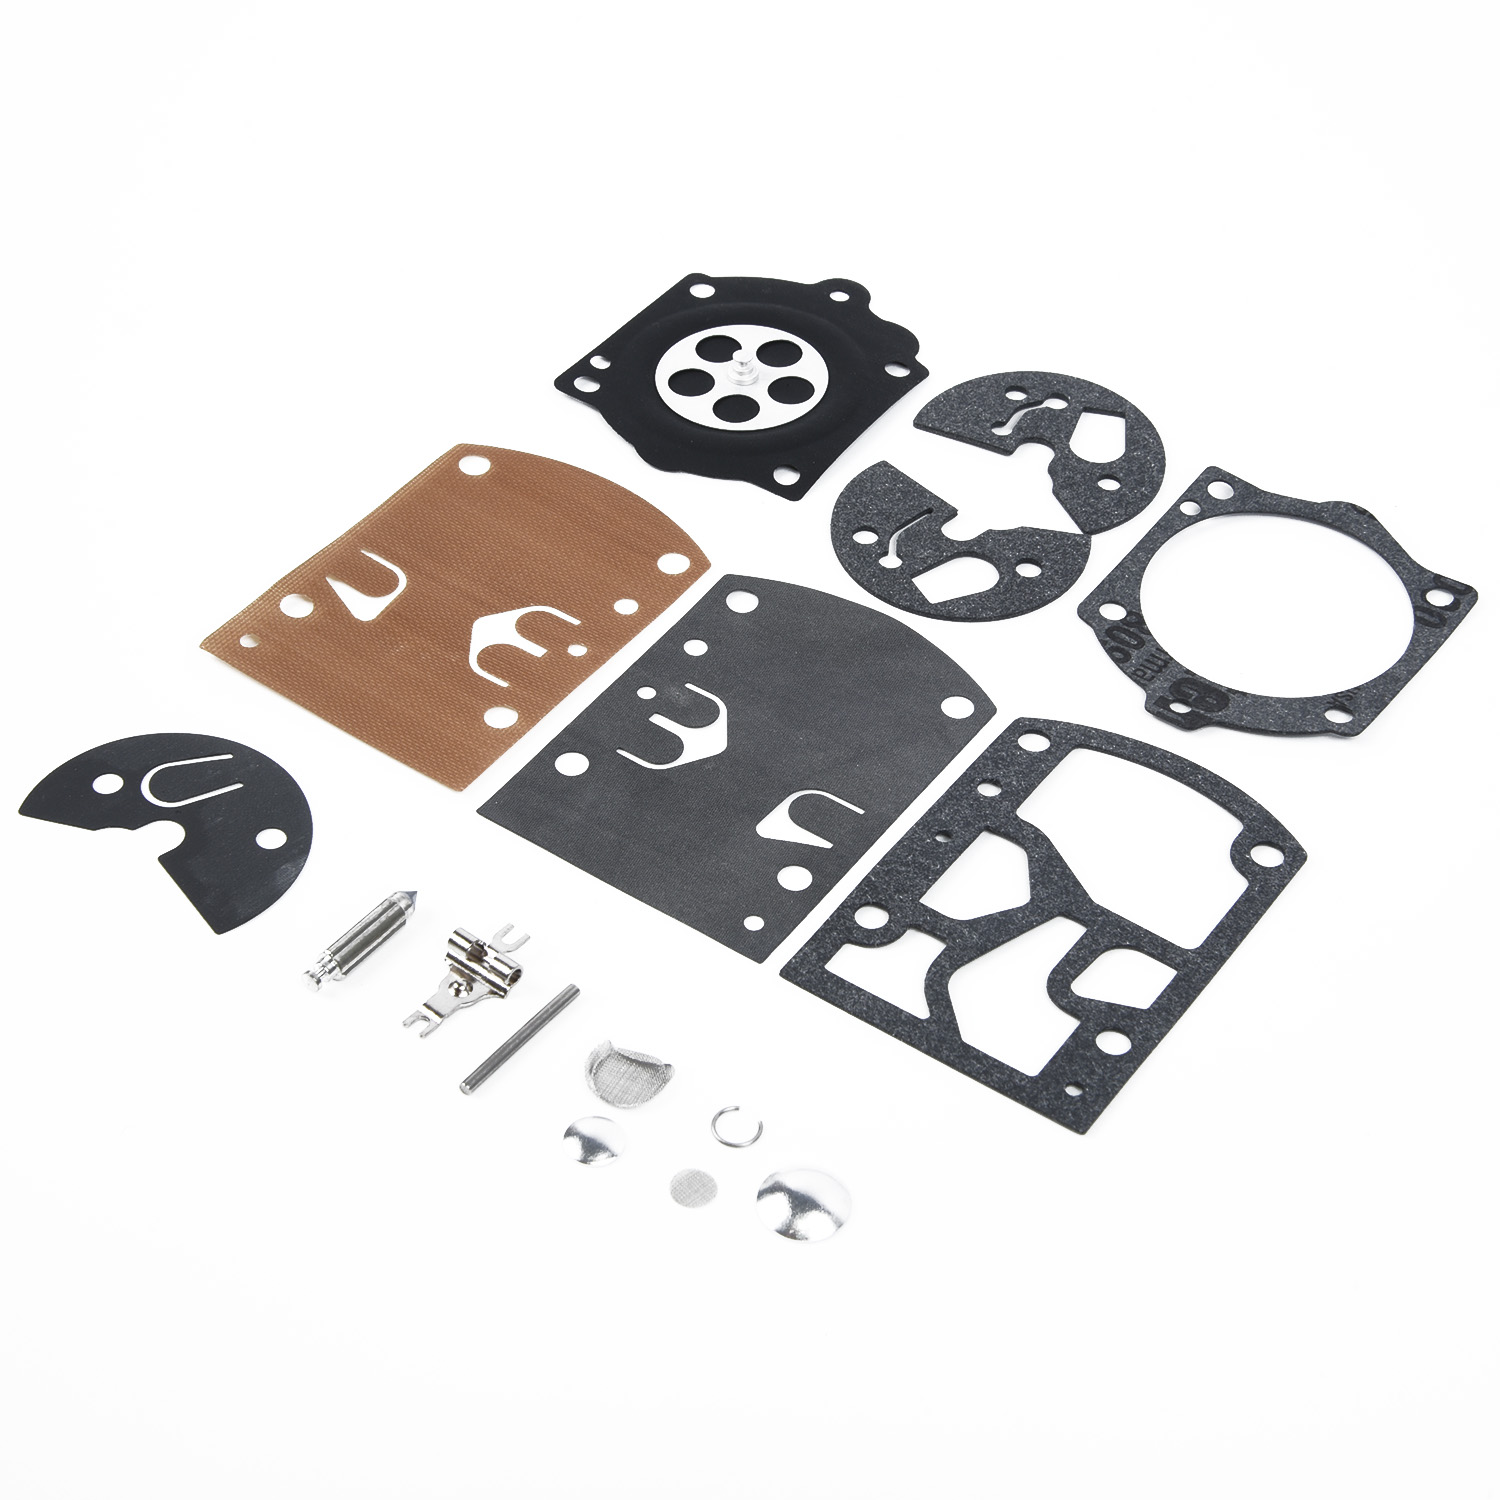 Carburetor Repair Kit Spare Part For Walbro K10-WB WB-24 WB-25 WB-32 WB-33 WB-35